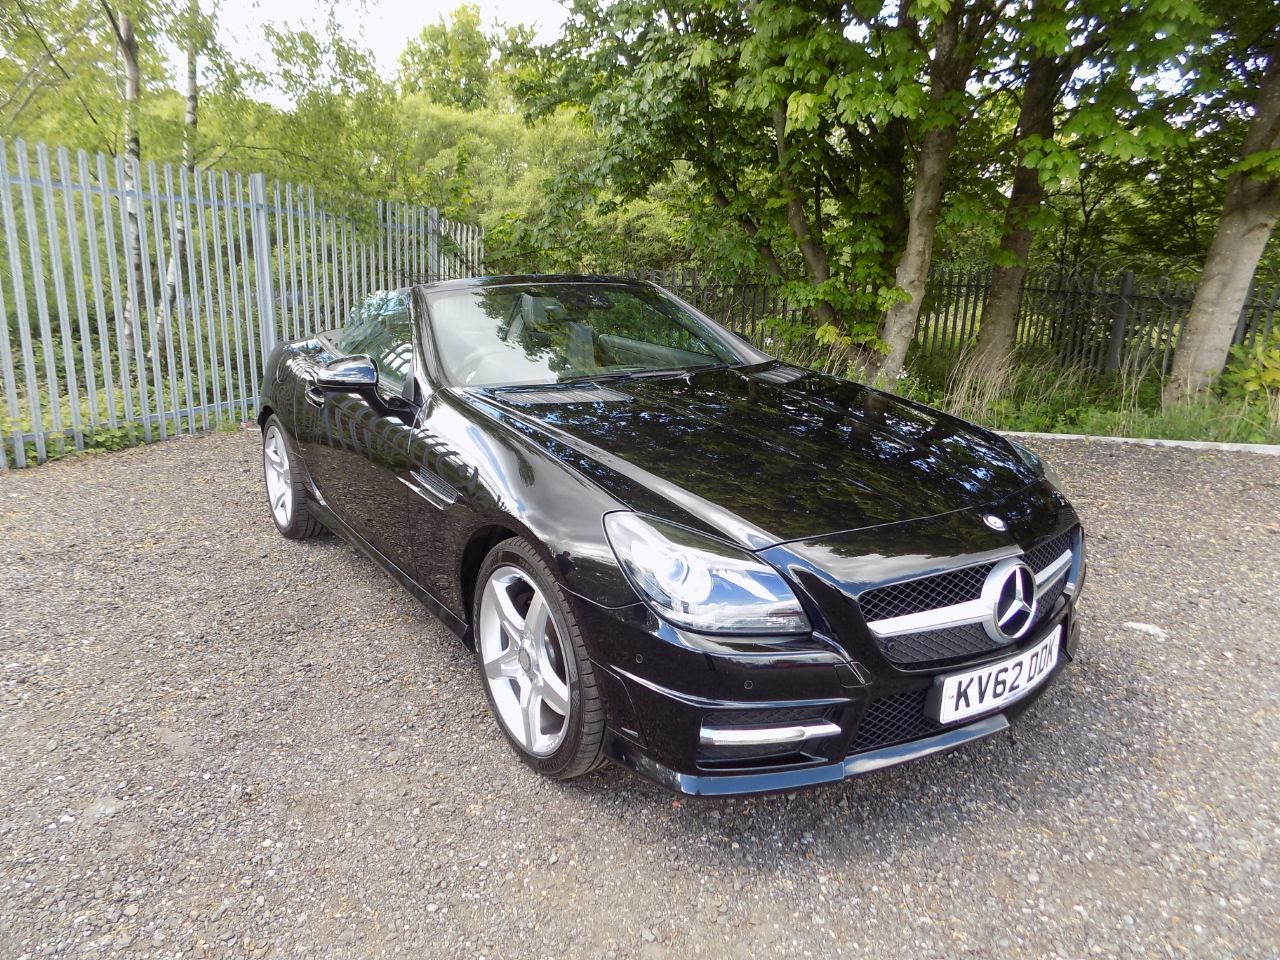 Mercedes-Benz SLK 3.5 SLK 350 BlueEFFICIENCY AMG Sport 2dr Tip Auto Convertible Petrol Black